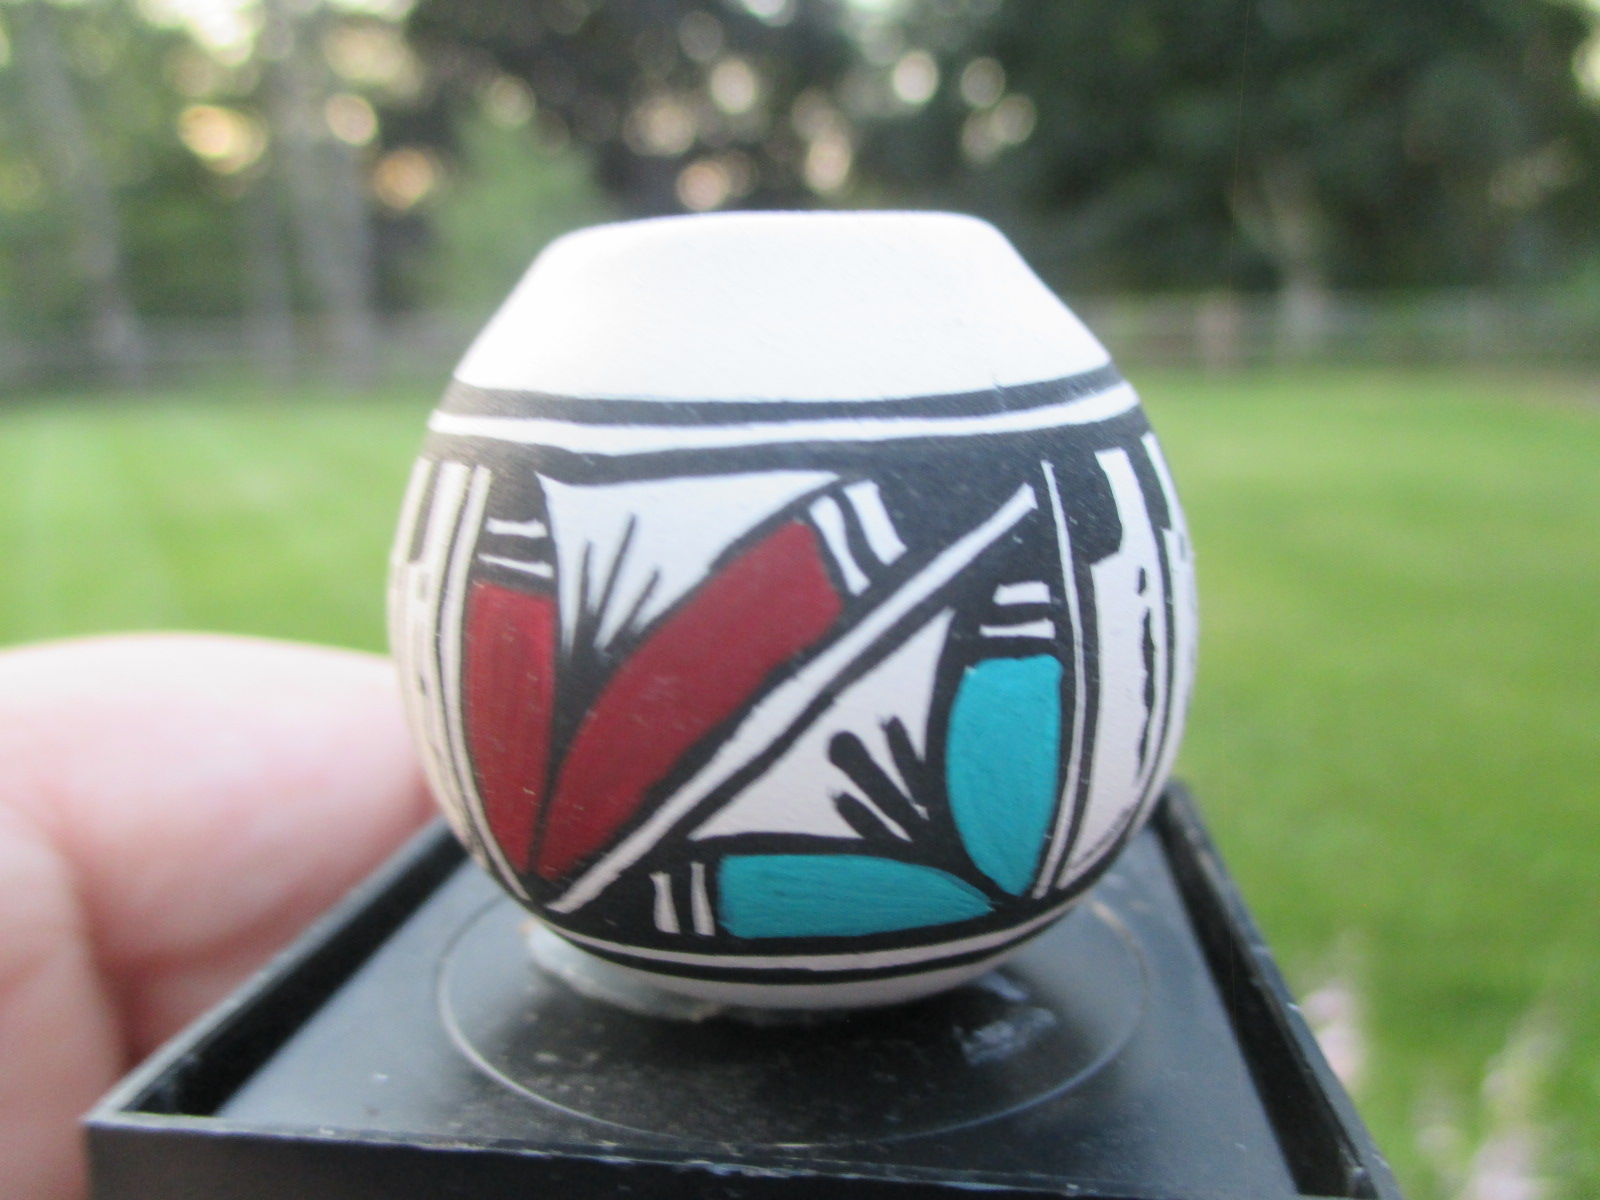 Western/Native American Patterned Pot Signed AT NAV 98